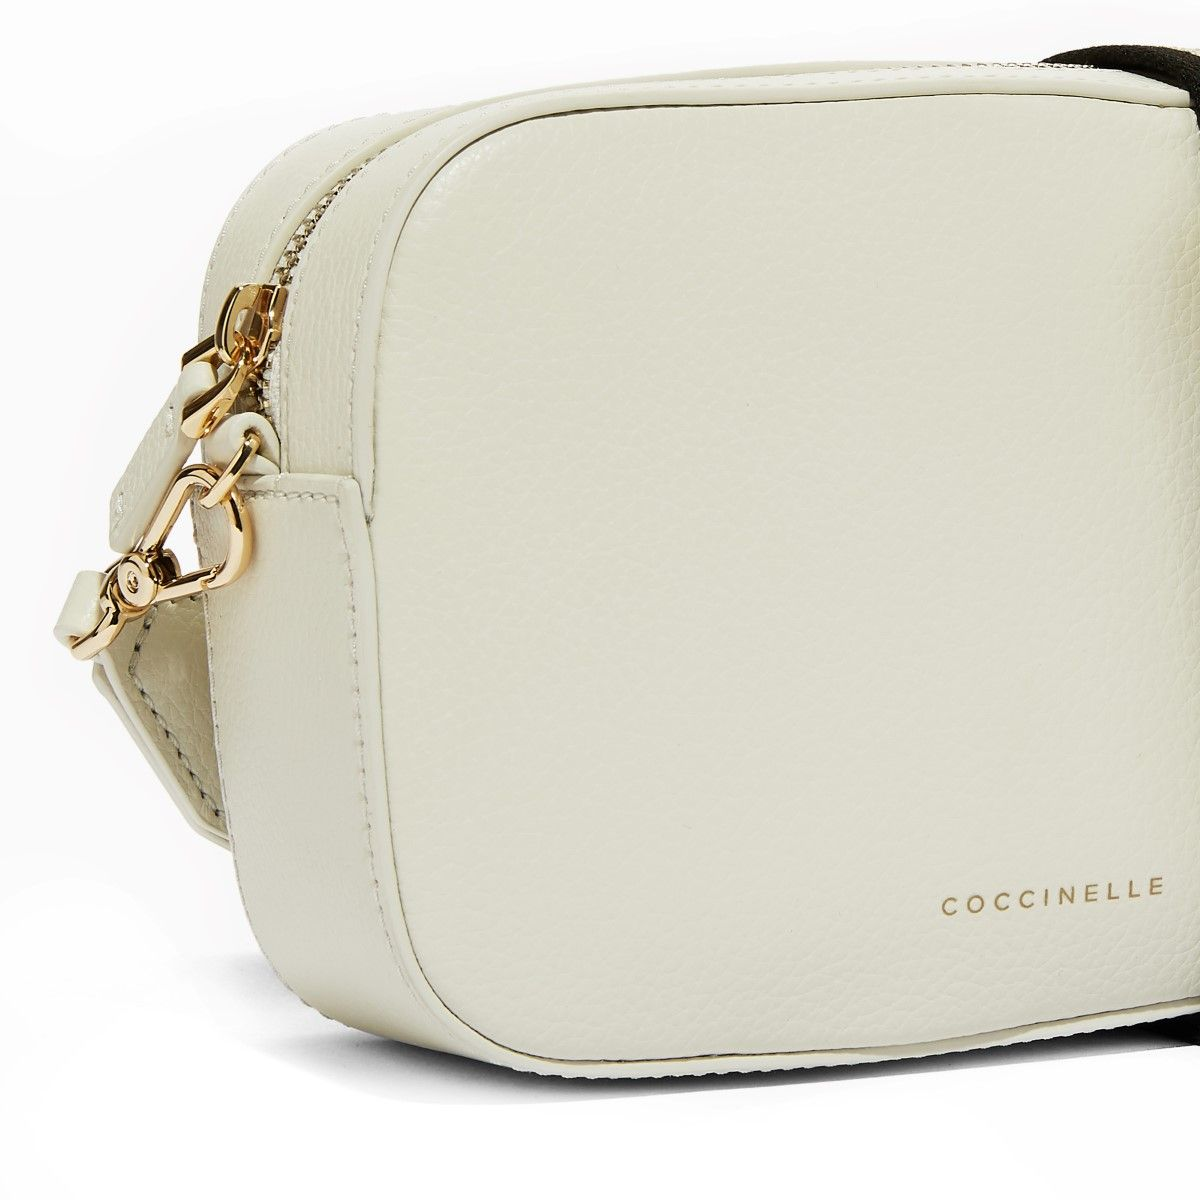 Tebe Crossbody Bag in Tumbled Leather Coccinelle CHALK